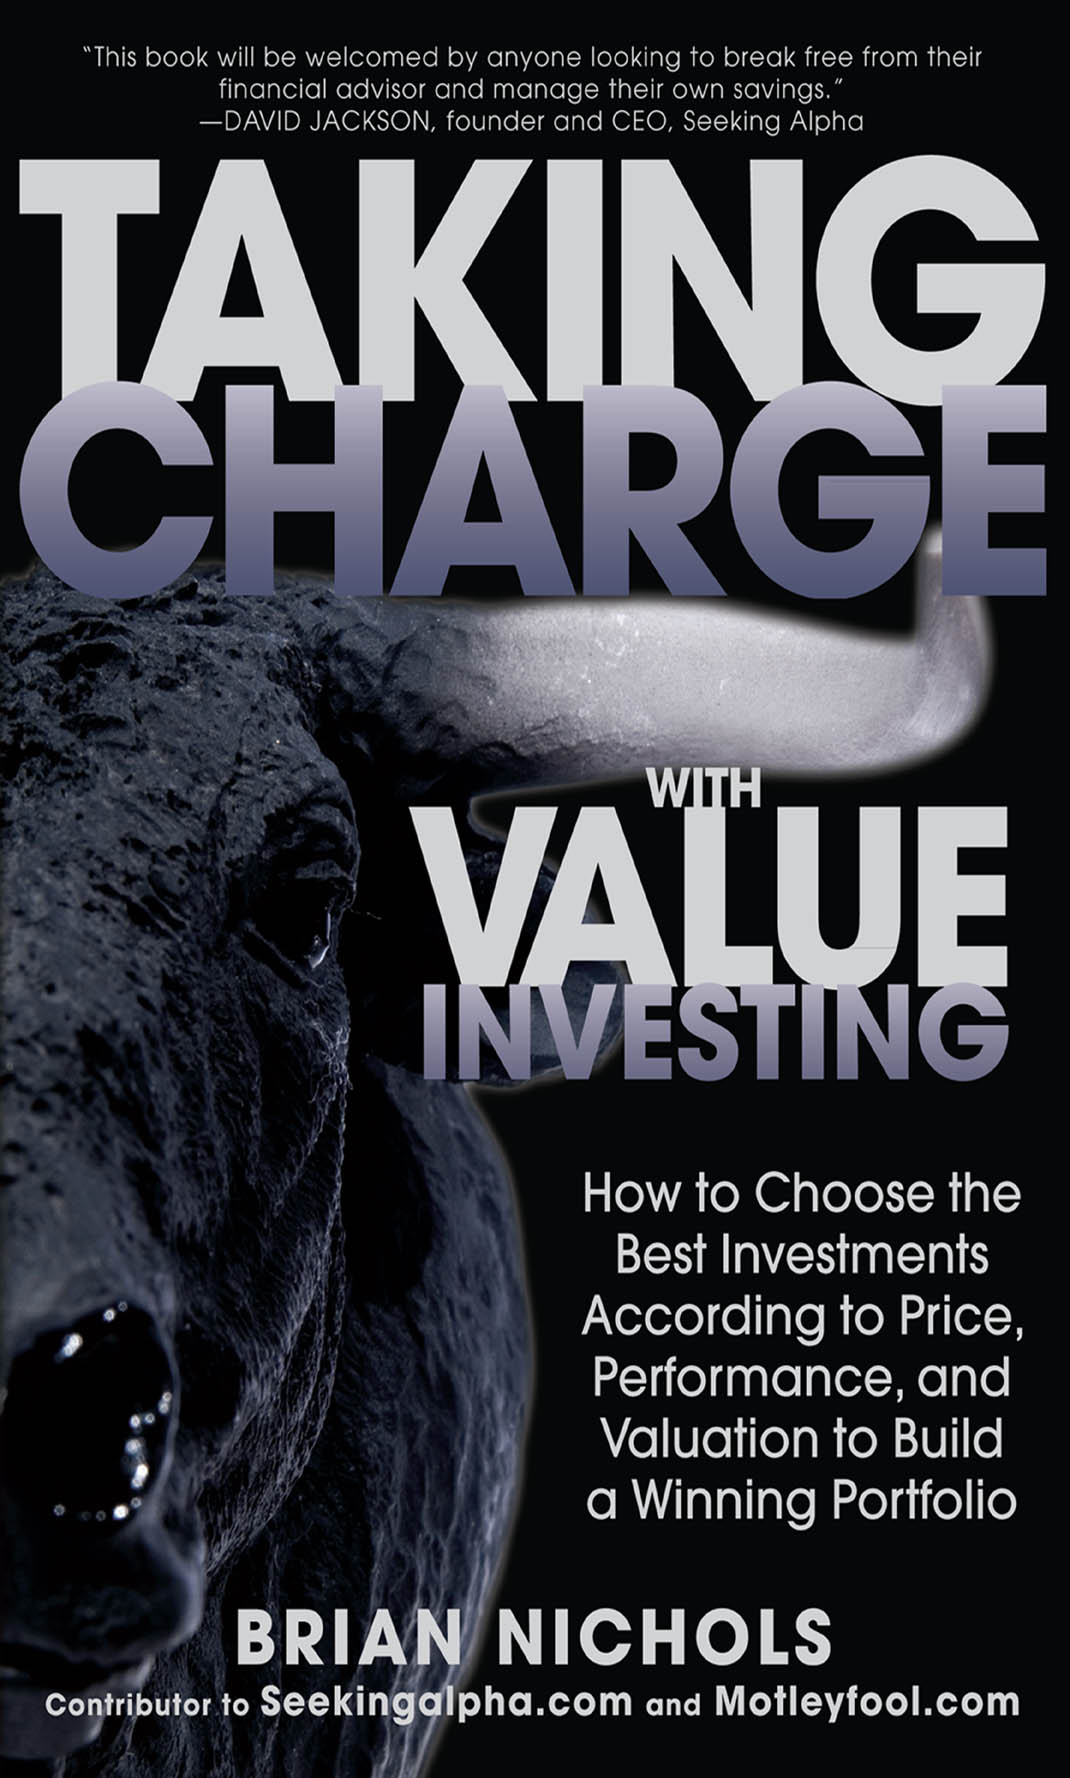 Taking Charge with Value Investing: How to Choose the Best Investments According to Price, Performance, & Valuation to Build a Winning Portfolio By: Brian Nichols